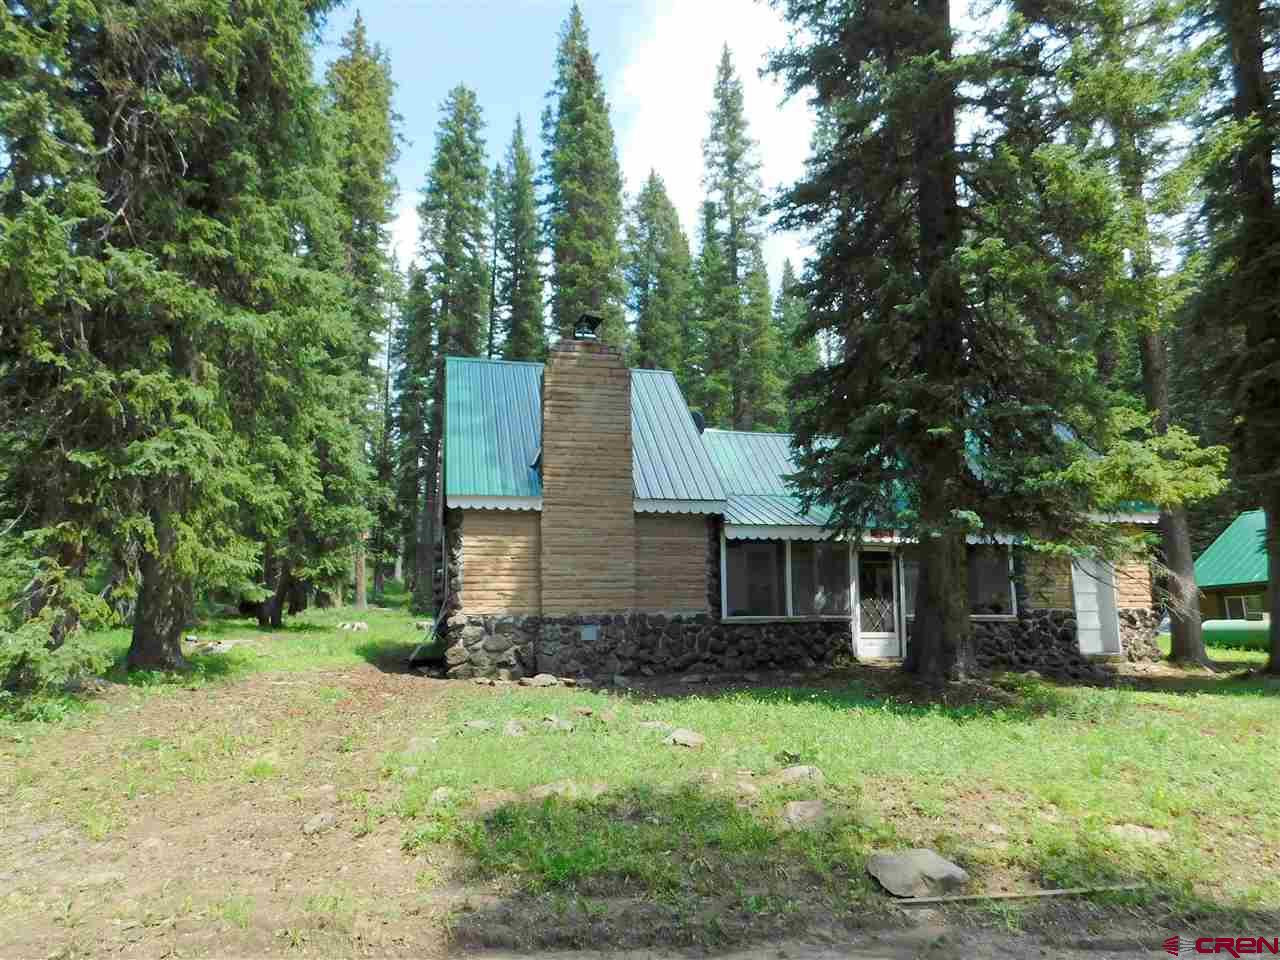 Cabin in the Grand Mesa Resort Company just a short walk away from both Baron Lake and Alexander Lake. Lots of hiking, fishing, ATVing in the spring, summer and fall plus unsurpassed snowmobiling, snowshoeing, or cross country skiing in the amazing snow of the winter. Cabin has both a water tap and a household well. Covered and screened front porch with attached storage room. Large living room offers a great space to gather around and includes a wood stove insert. Upstairs will sleep plenty of your family and guests! Two private bedrooms plus the open area. This cabin is being sold furnished.